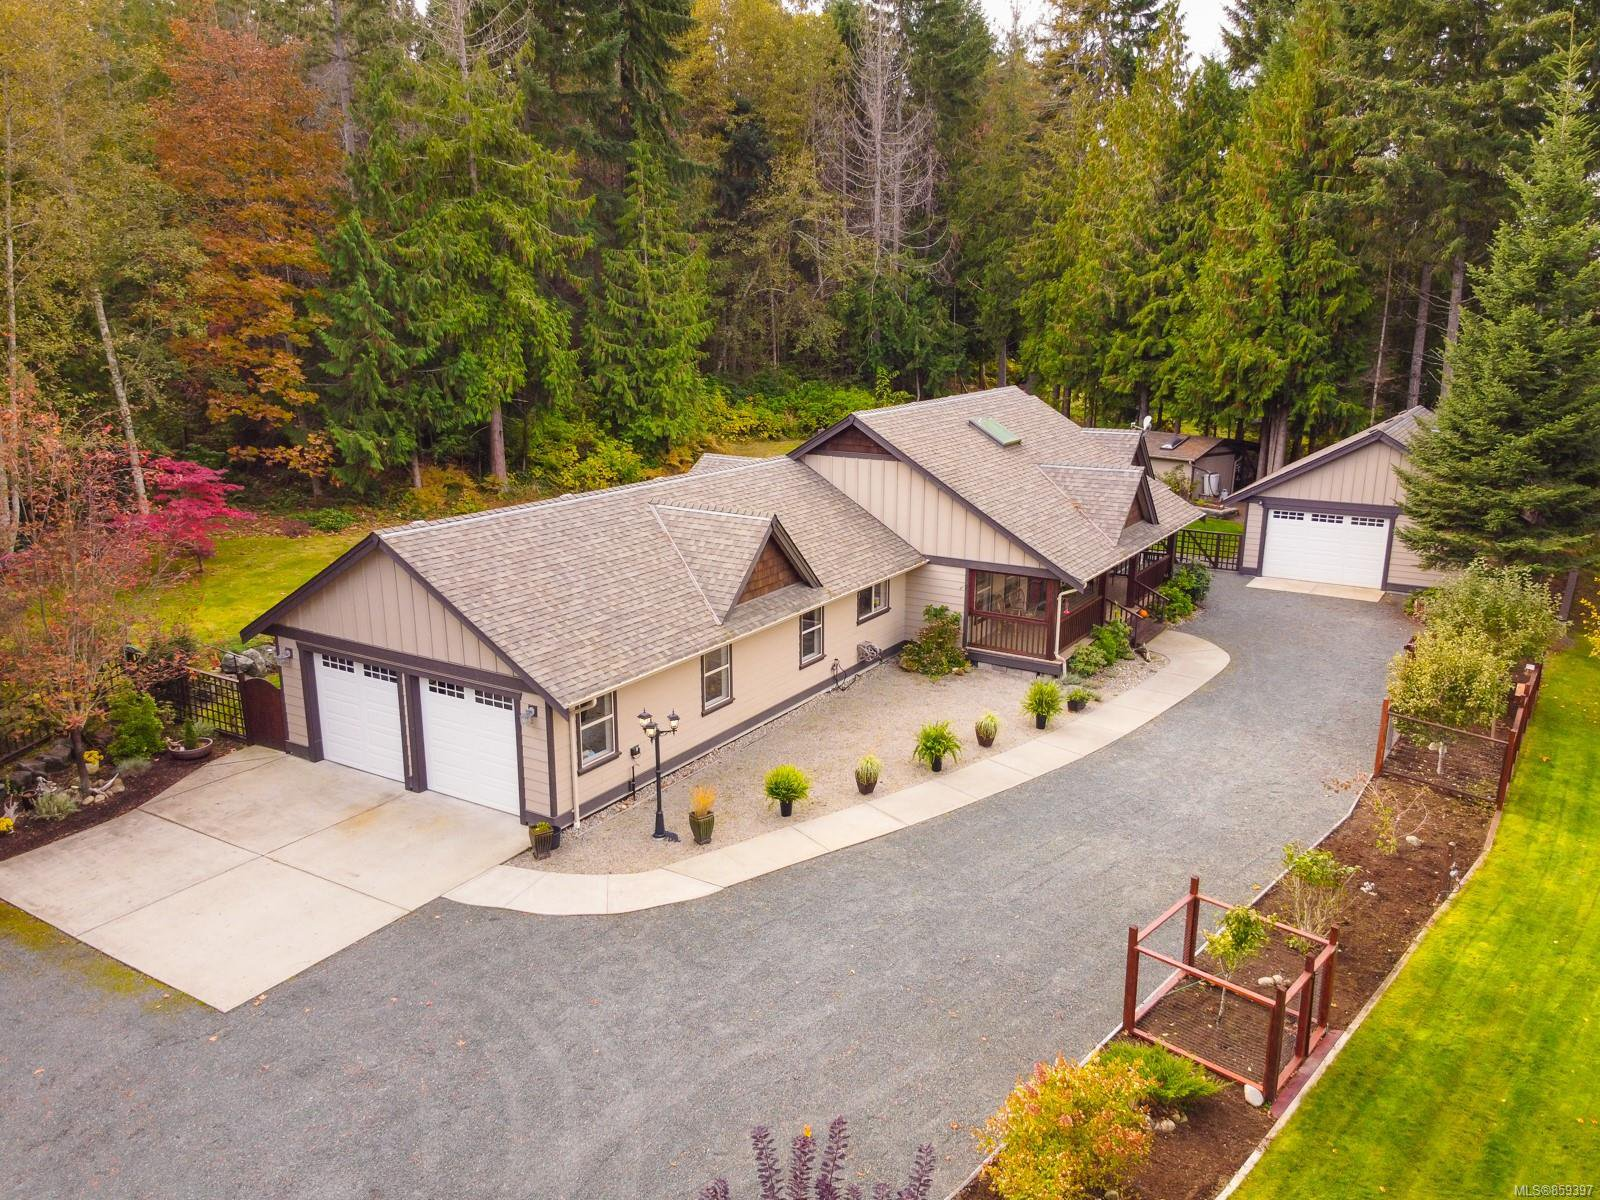 Main Photo: 1100 Coldwater Rd in : PQ Parksville House for sale (Parksville/Qualicum)  : MLS®# 859397